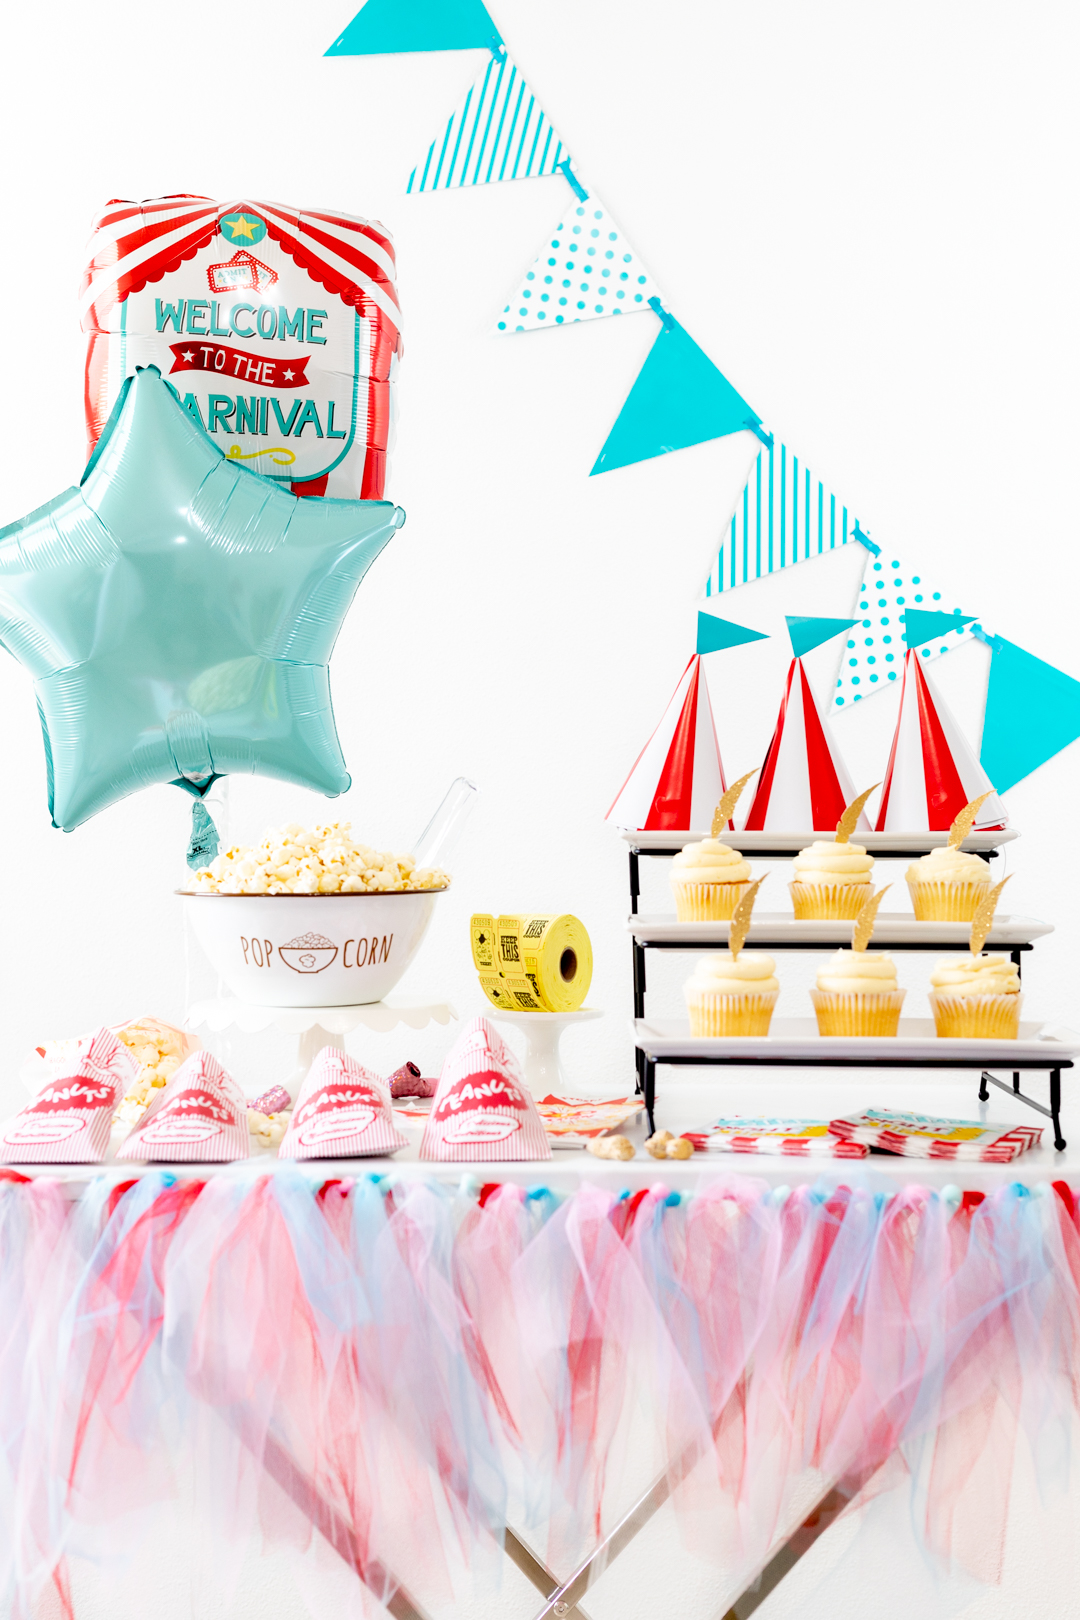 Carnival party ideas to celebrate the release of the Dumbo movie.